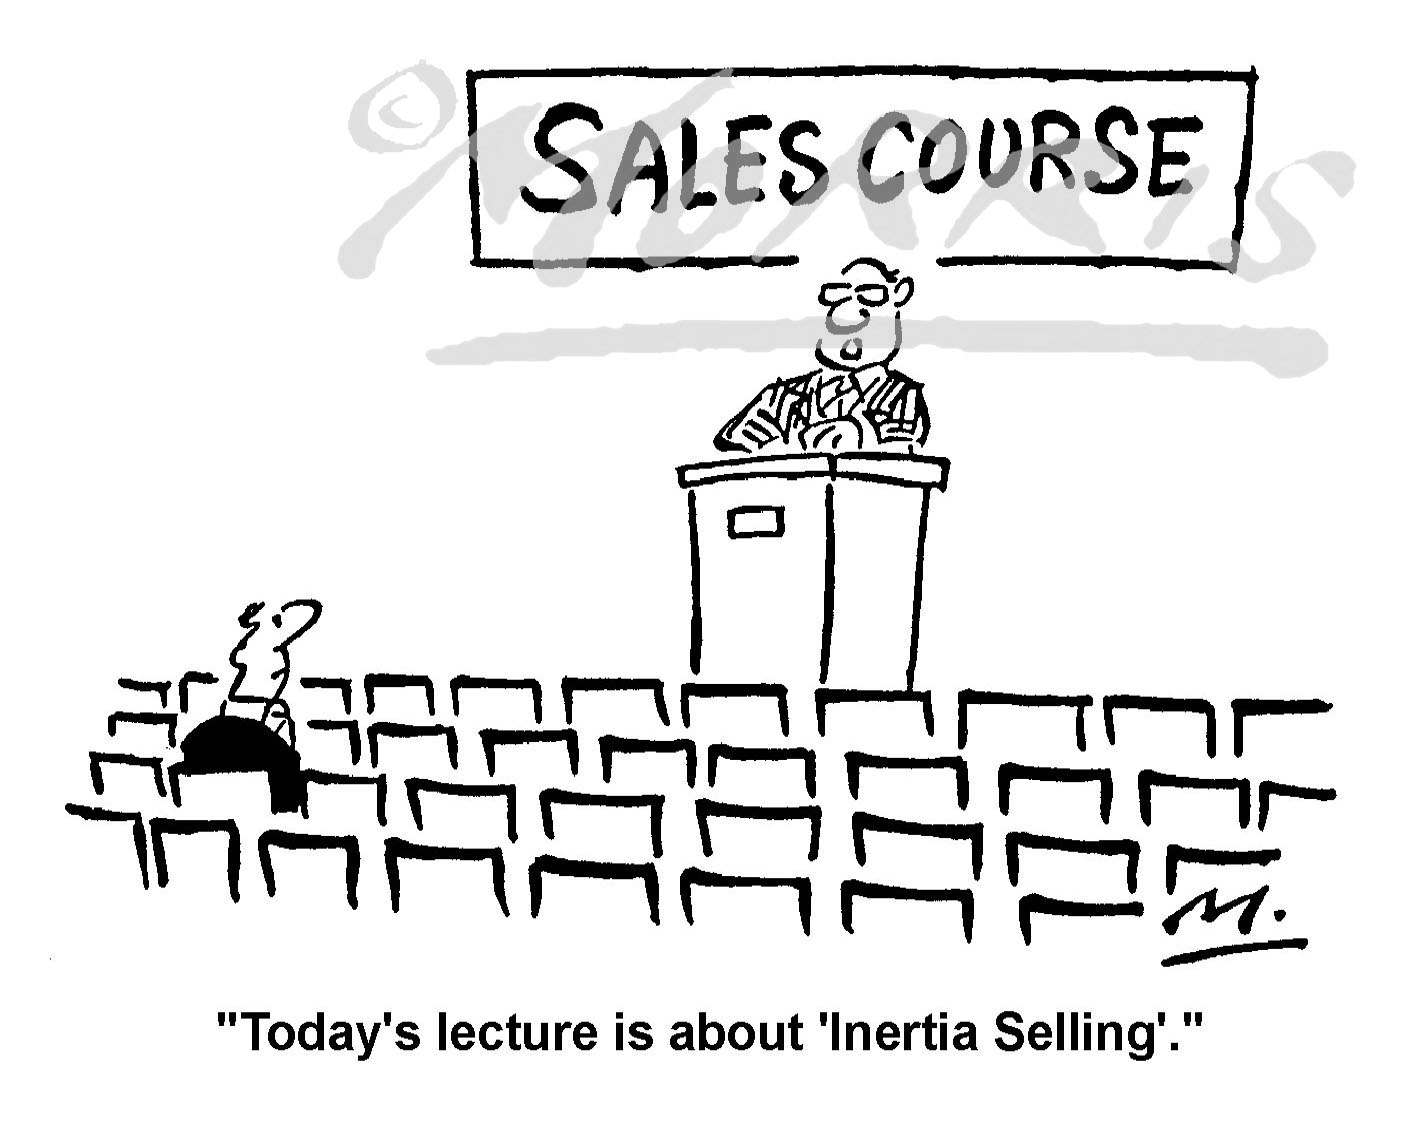 Sales cartoon, Sales course cartoon, Sales training cartoon